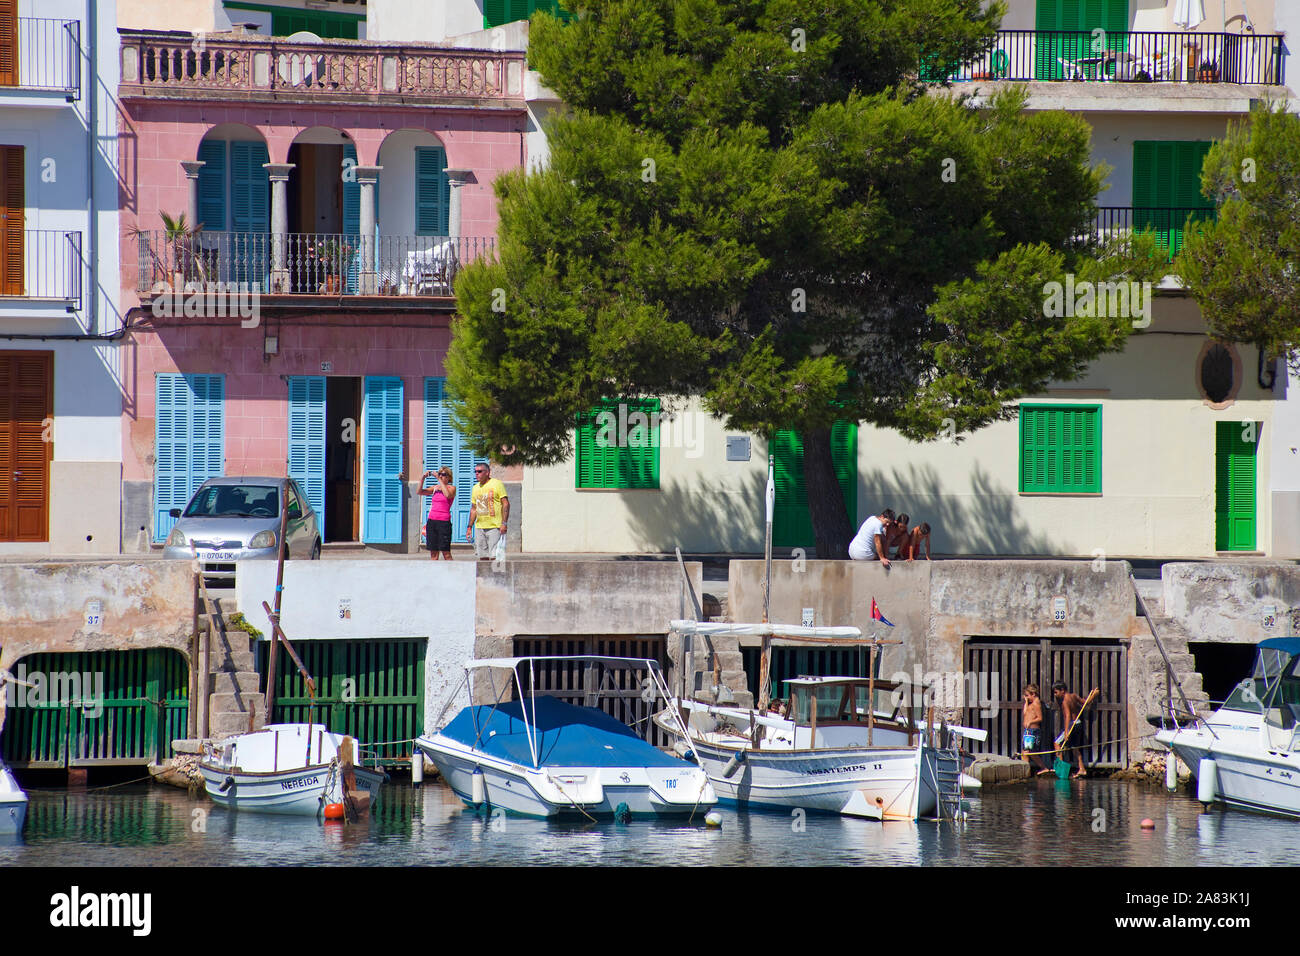 Boat garages under former fishing houses, historic harbour of Porto Colom, Mallorca, Balearic islands, Spain Stock Photo